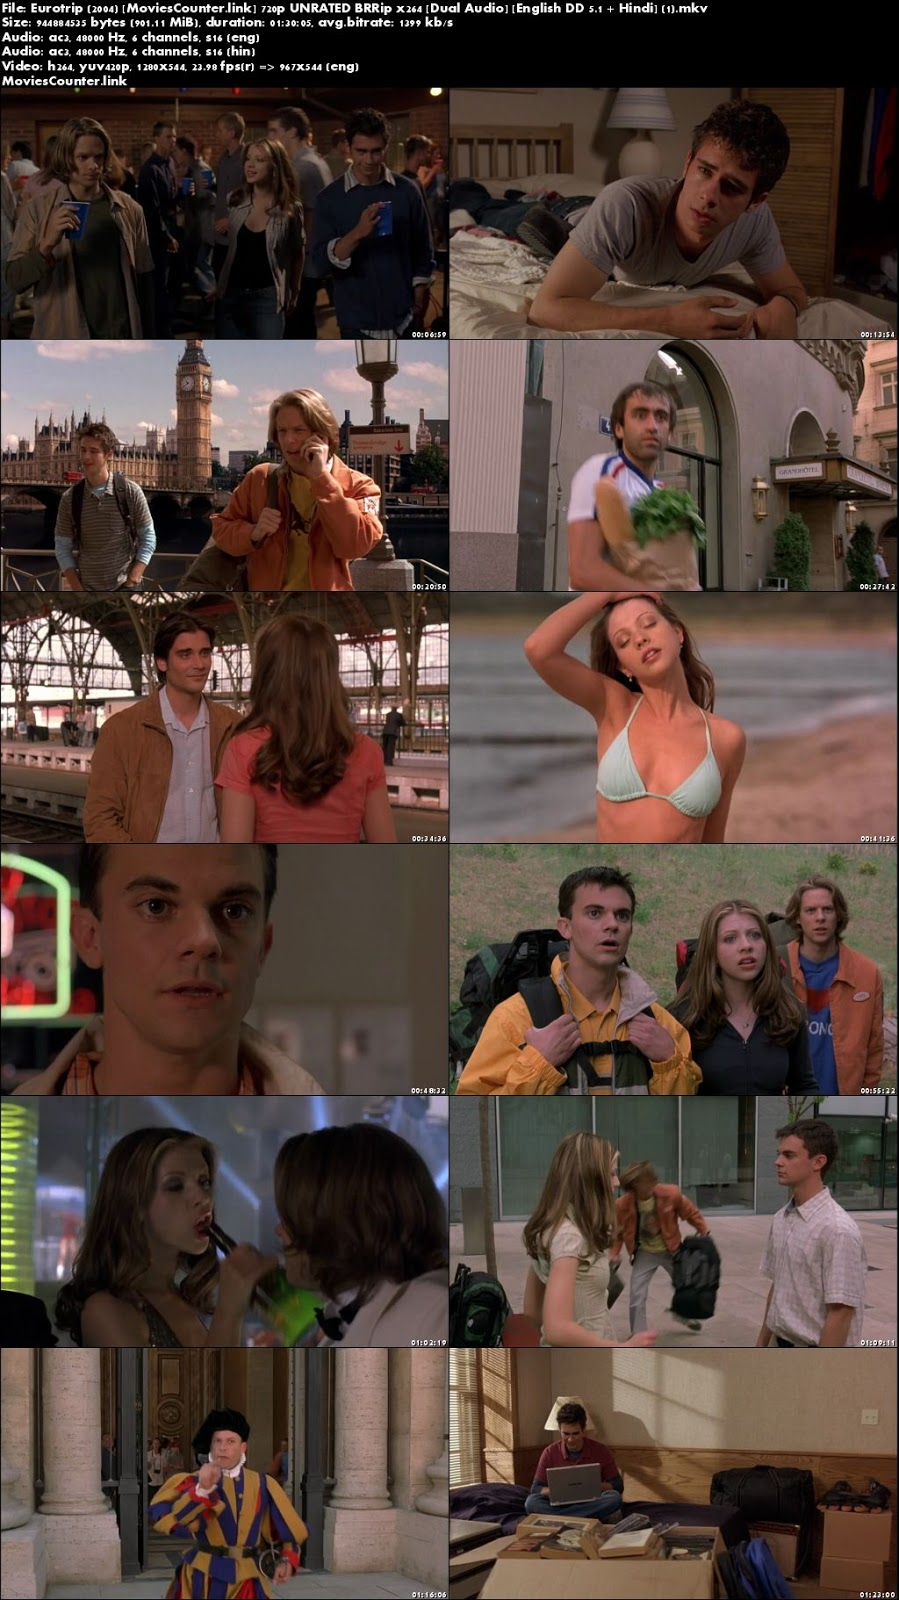 Screen Shots EuroTrip 2004 Dual Audio HD 1080p